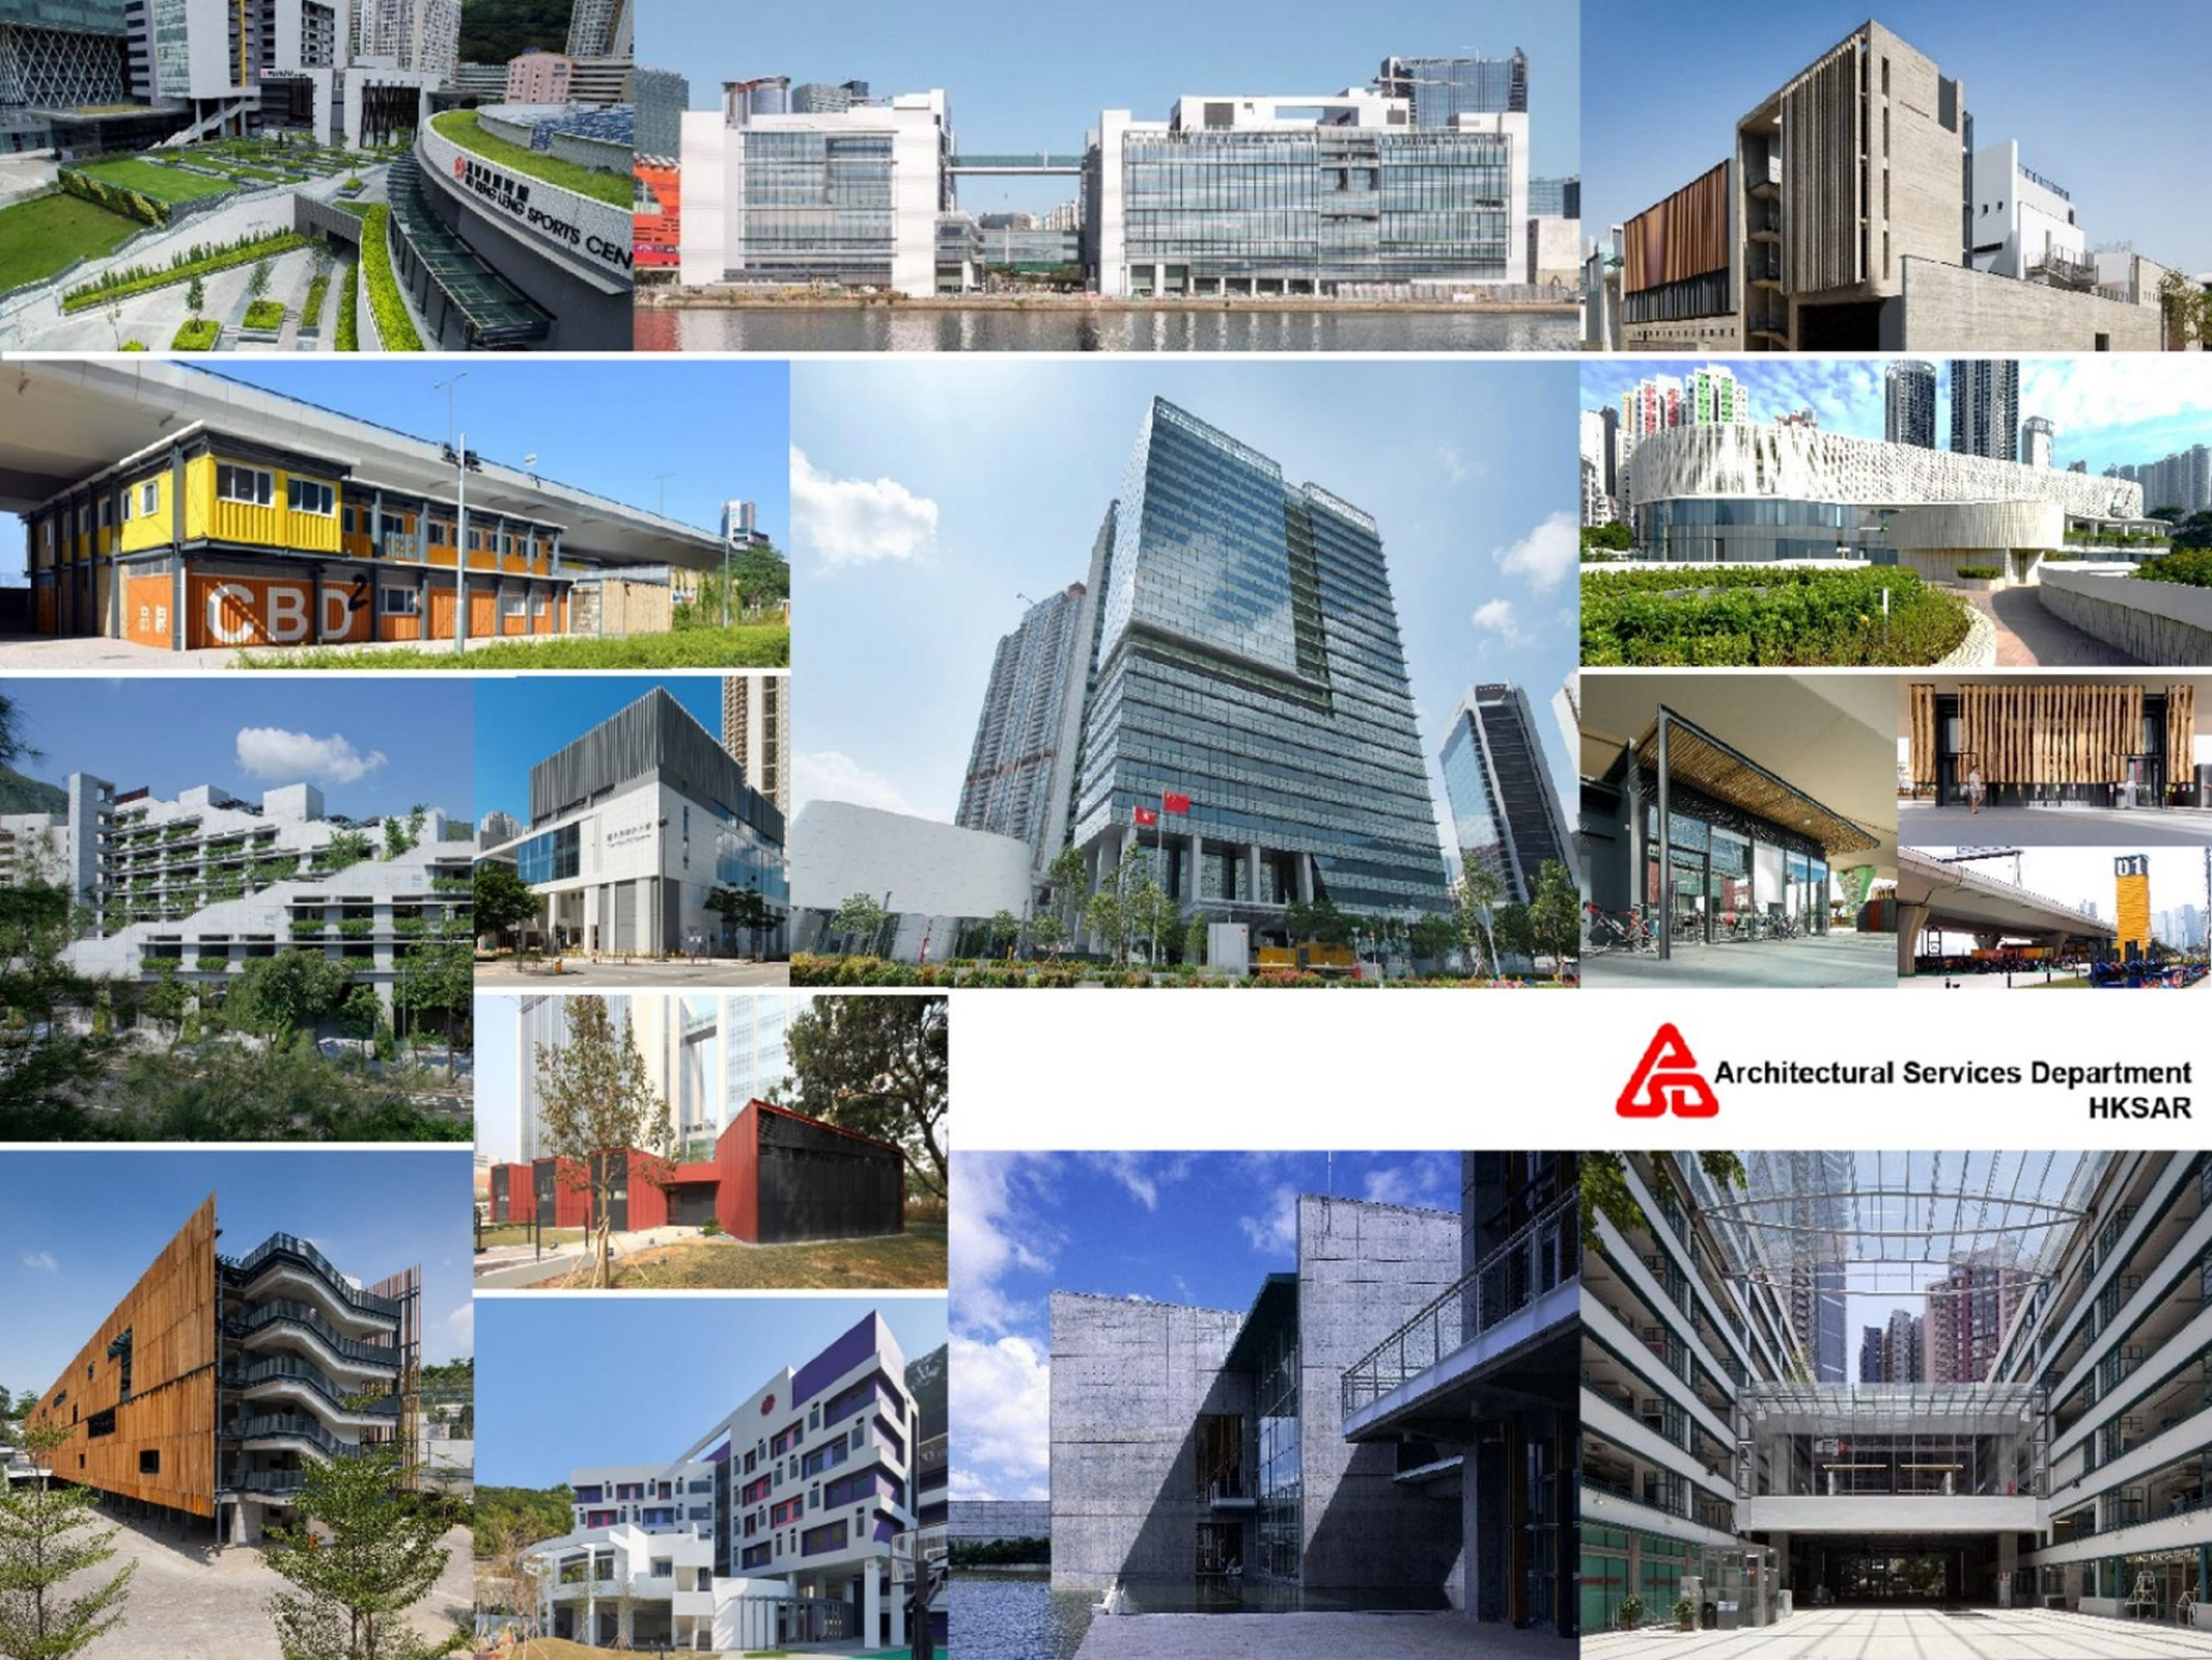 Projects by Architectural Services Department, HKSAR